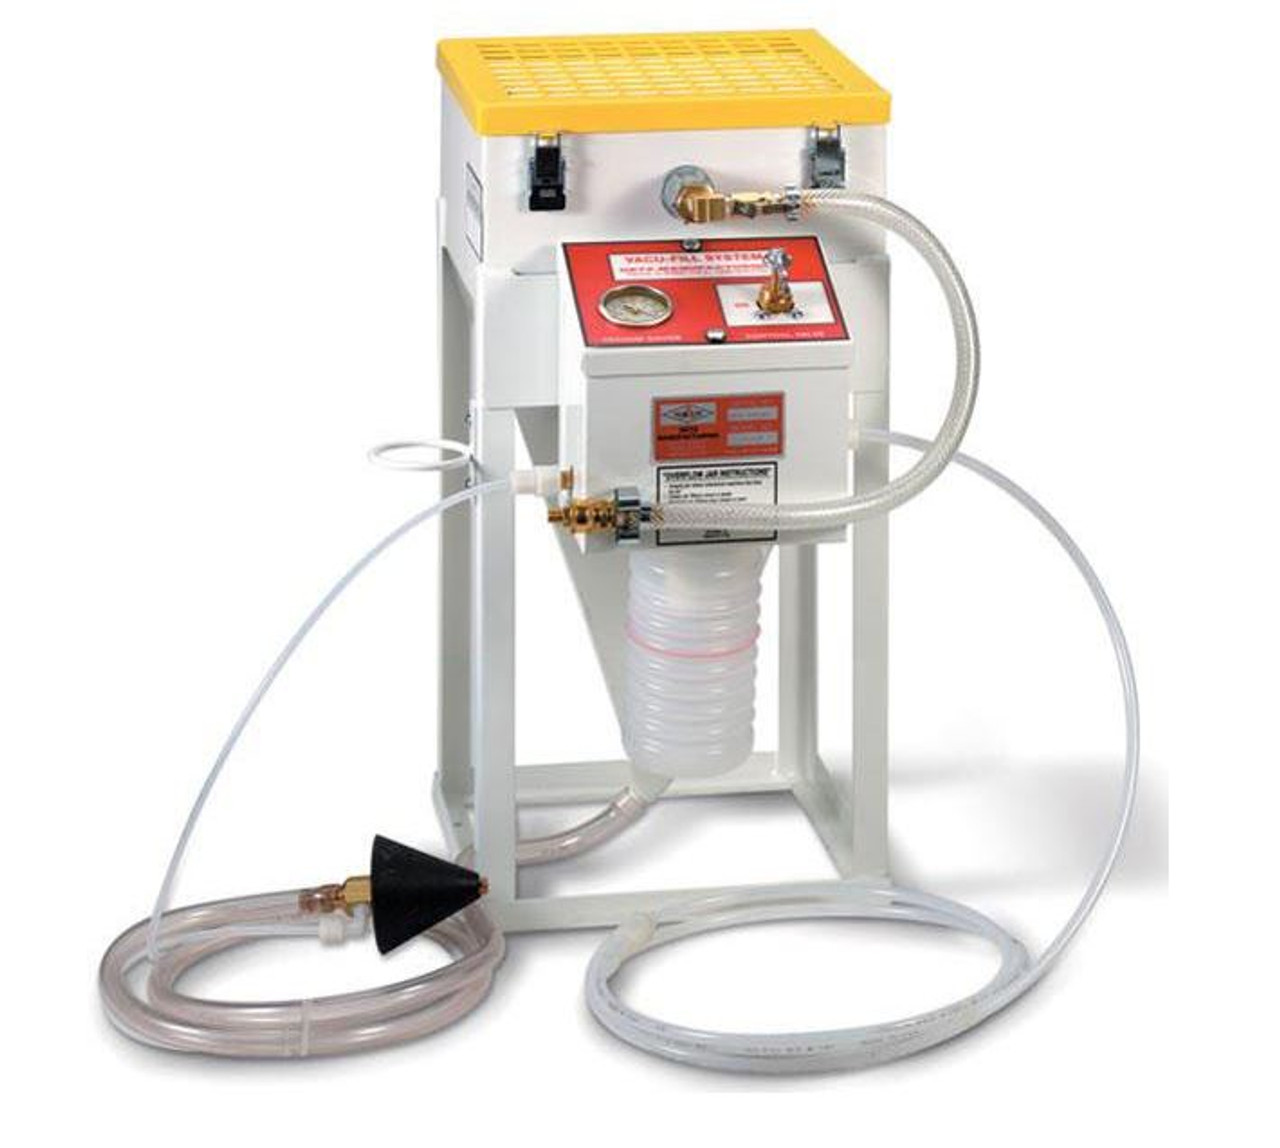 Getz Vacu-Fill Dry Chemical Filling System - 50 LBS